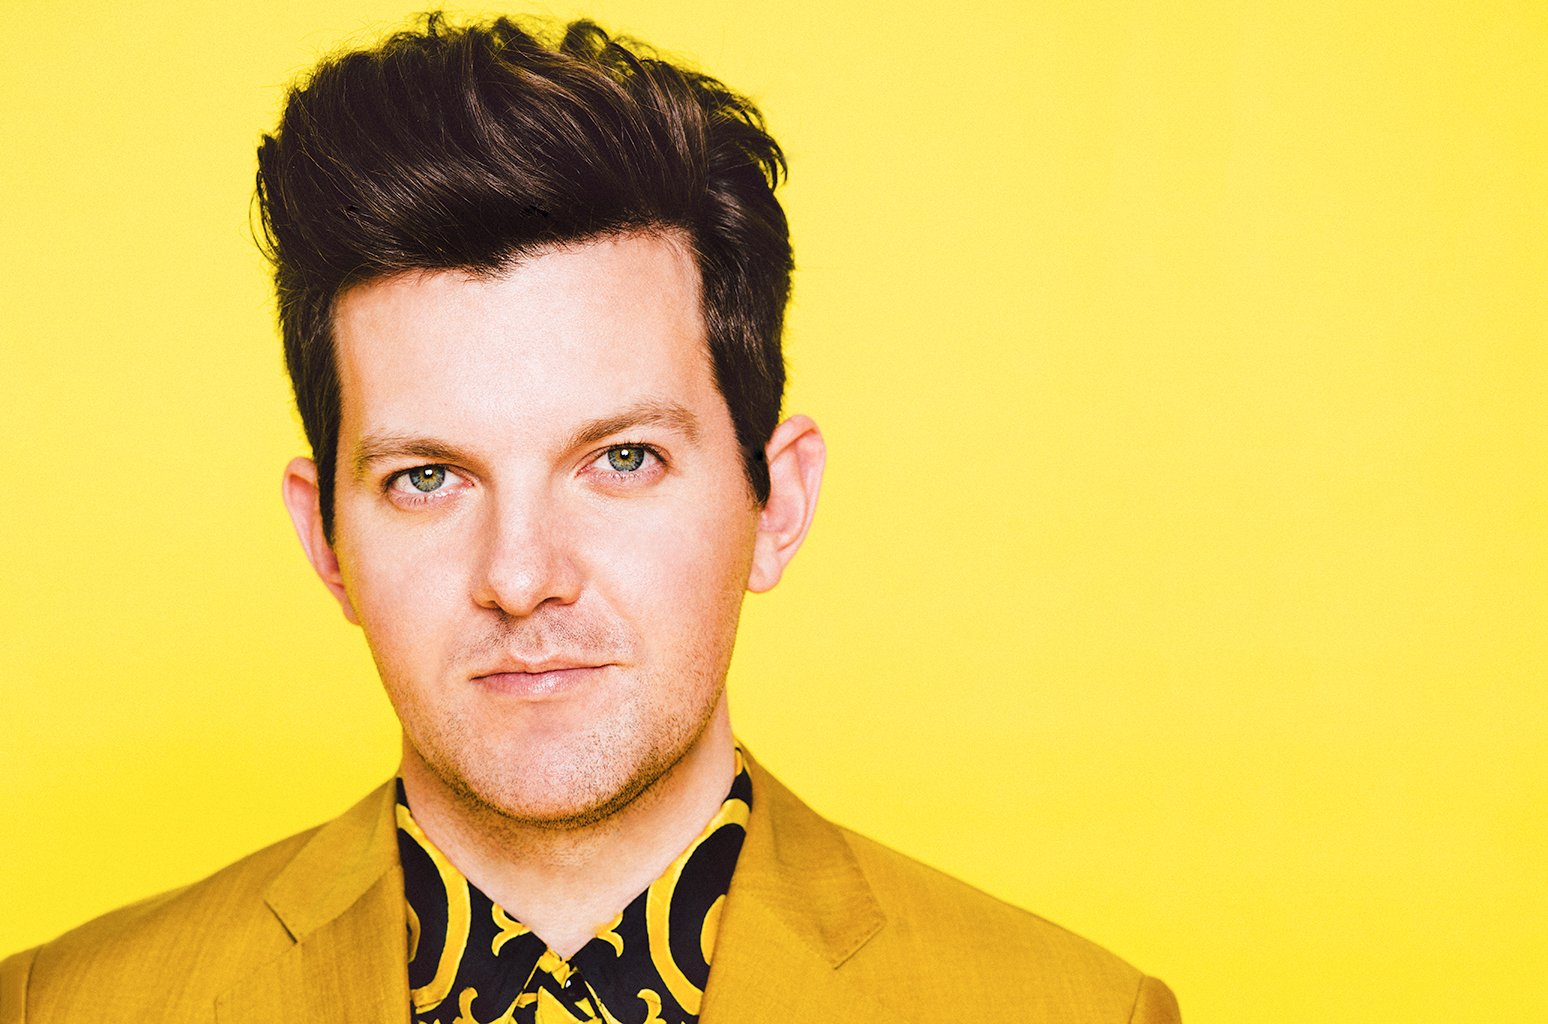 Have you seen the prank that Dillon Francis pulled on DJ Snake? https://t.co/dLetHYbACv https://t.co/dwvZguJWHk